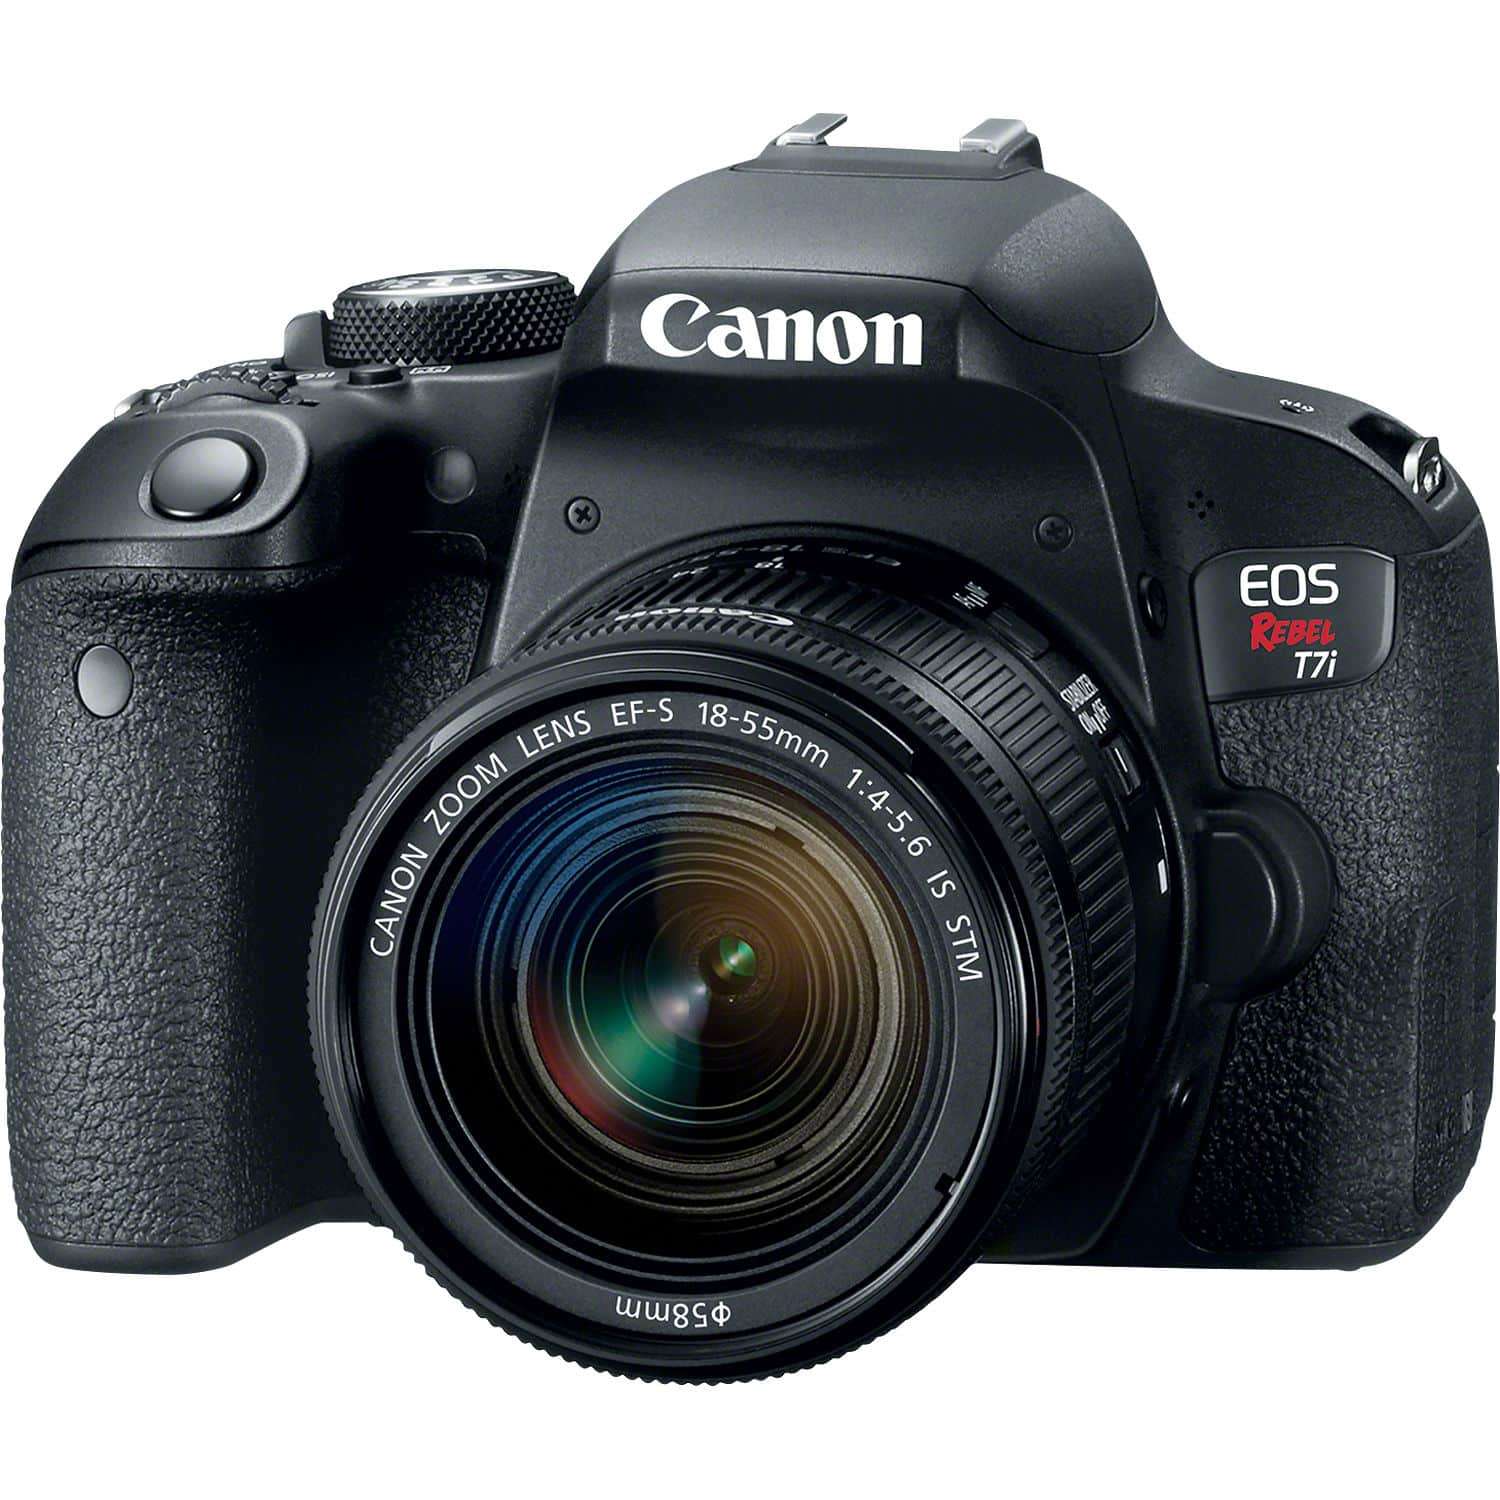 Canon Rebel T7i | Best Camera For YouTube Vlogging | YouTube Camera Kit